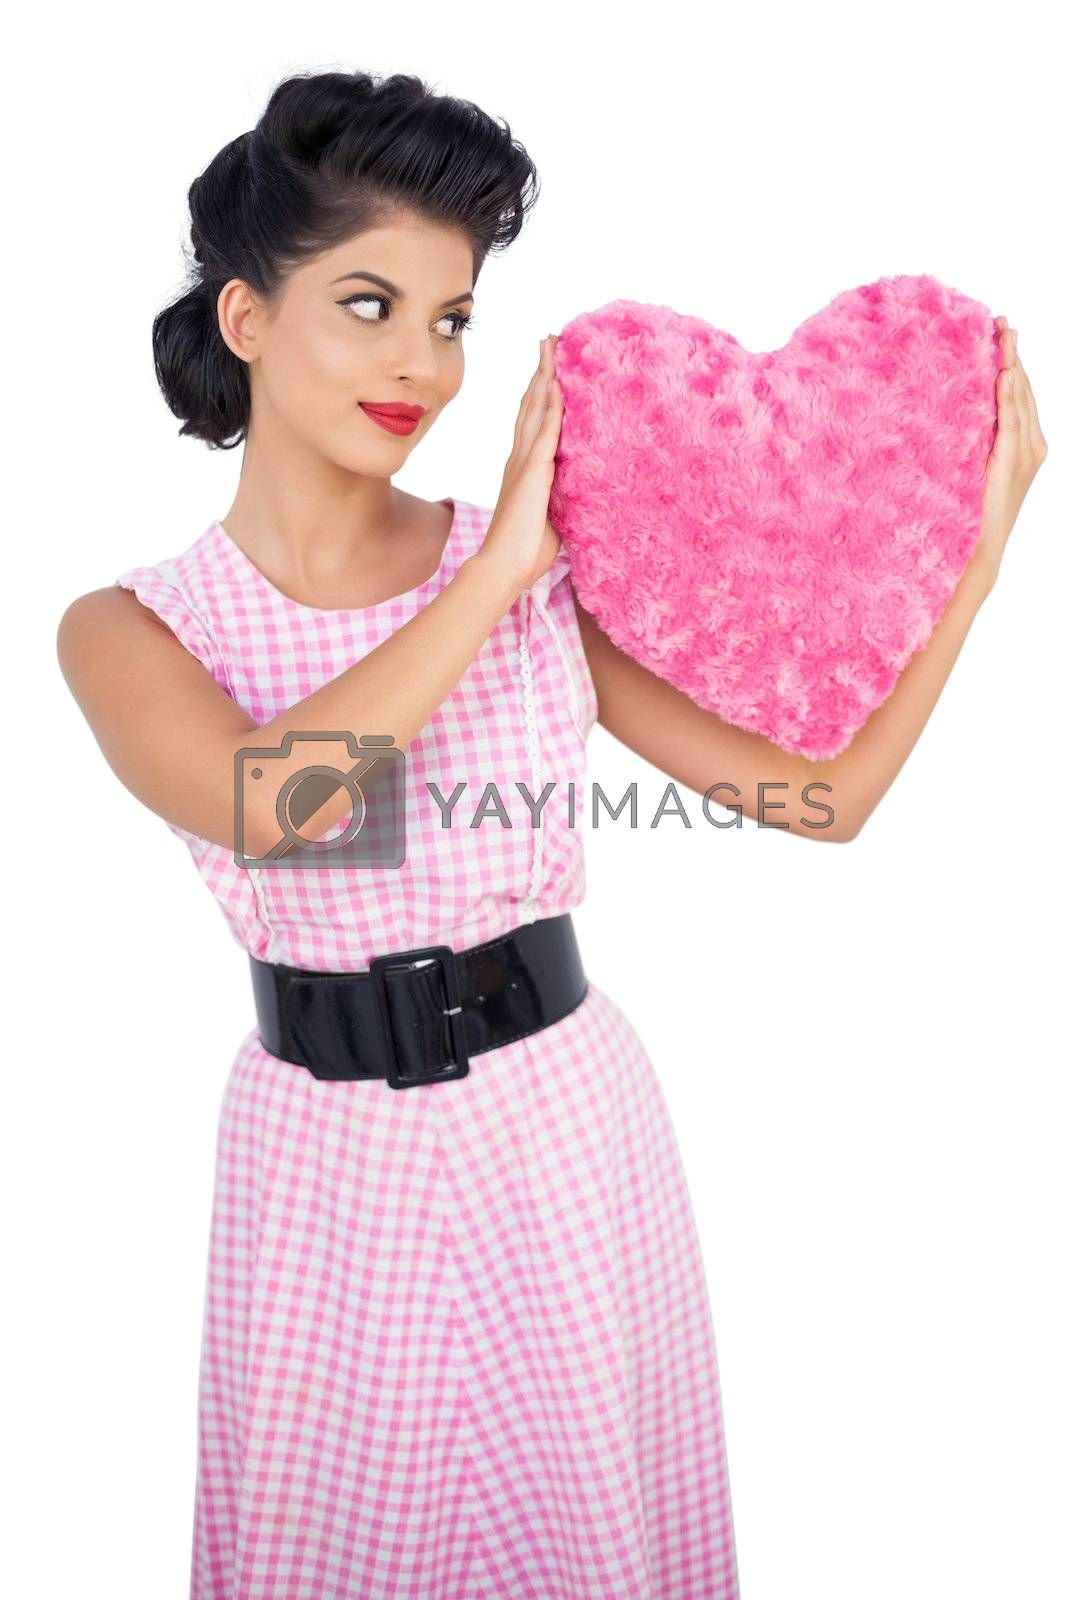 Stylish black hair model holding a pink heart shaped pillow by Wavebreakmedia